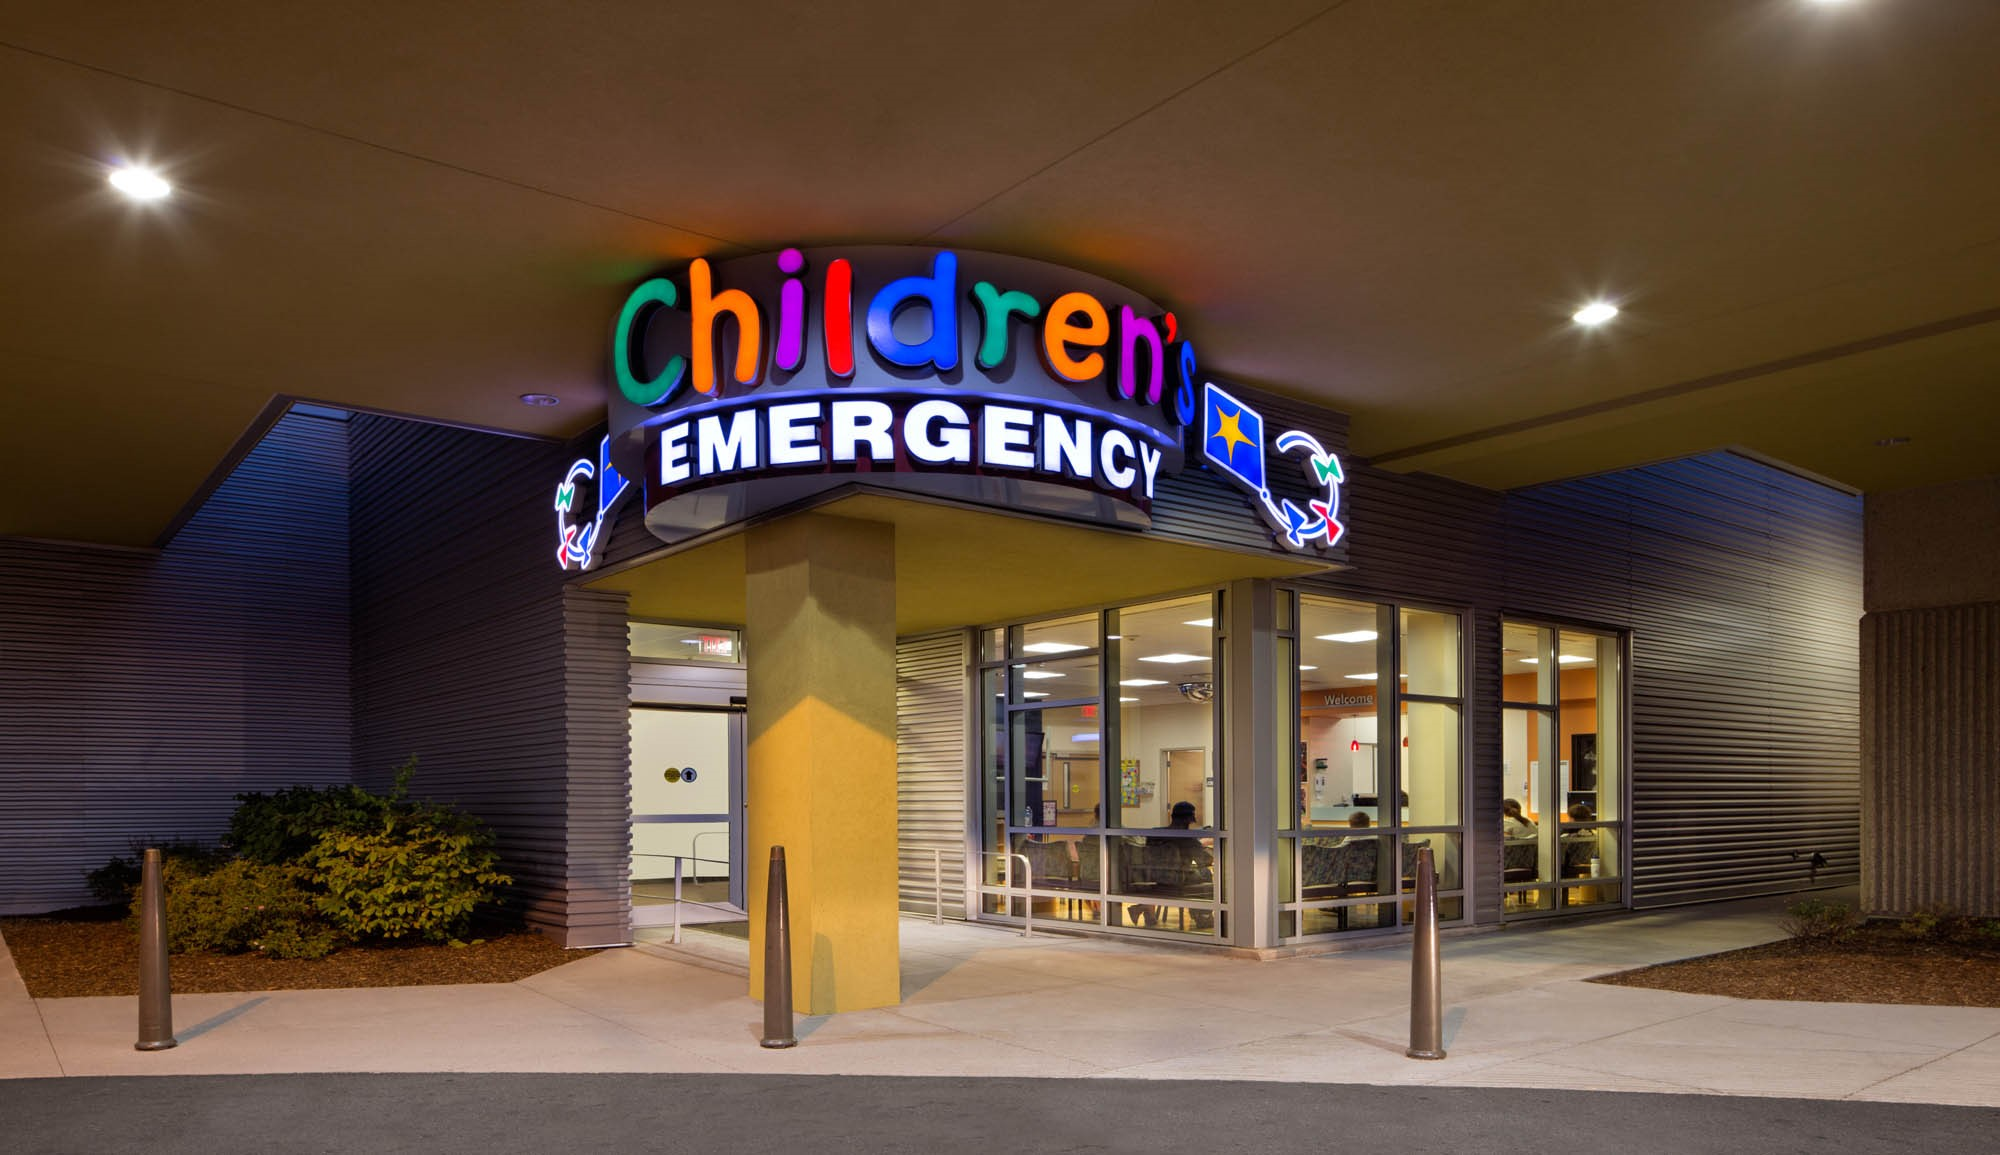 Kids Emergency Room : The Niswonger Childrens Hospital ER is a state-of-the-art facility ...